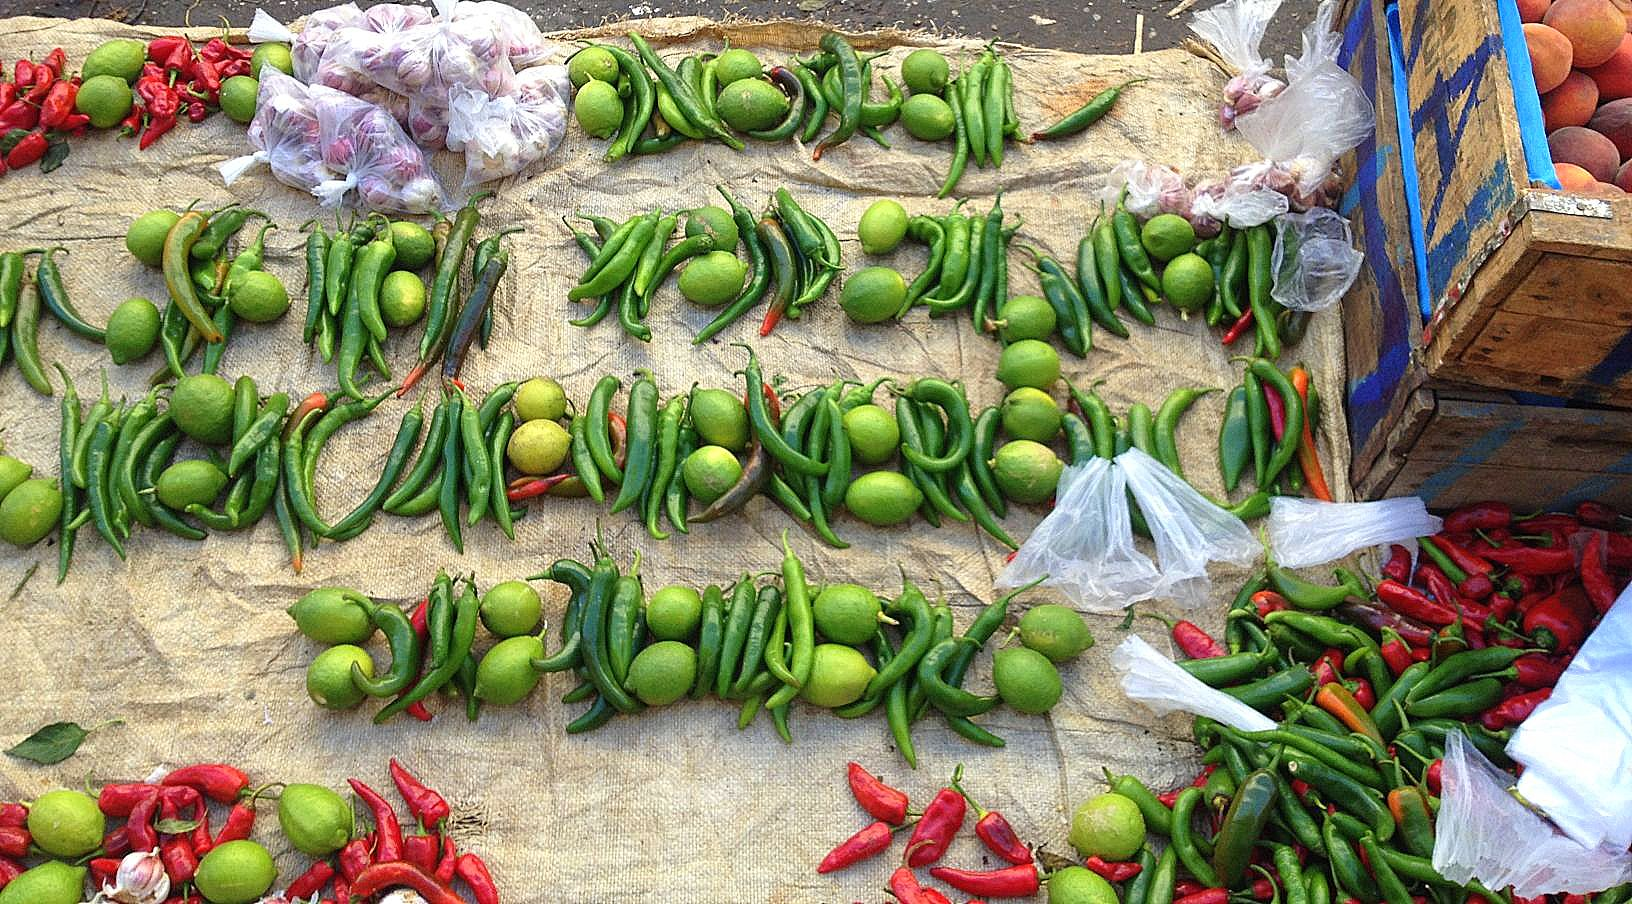 A spread of red and green chili , lime and garlic sold in the market., ideal for harissa